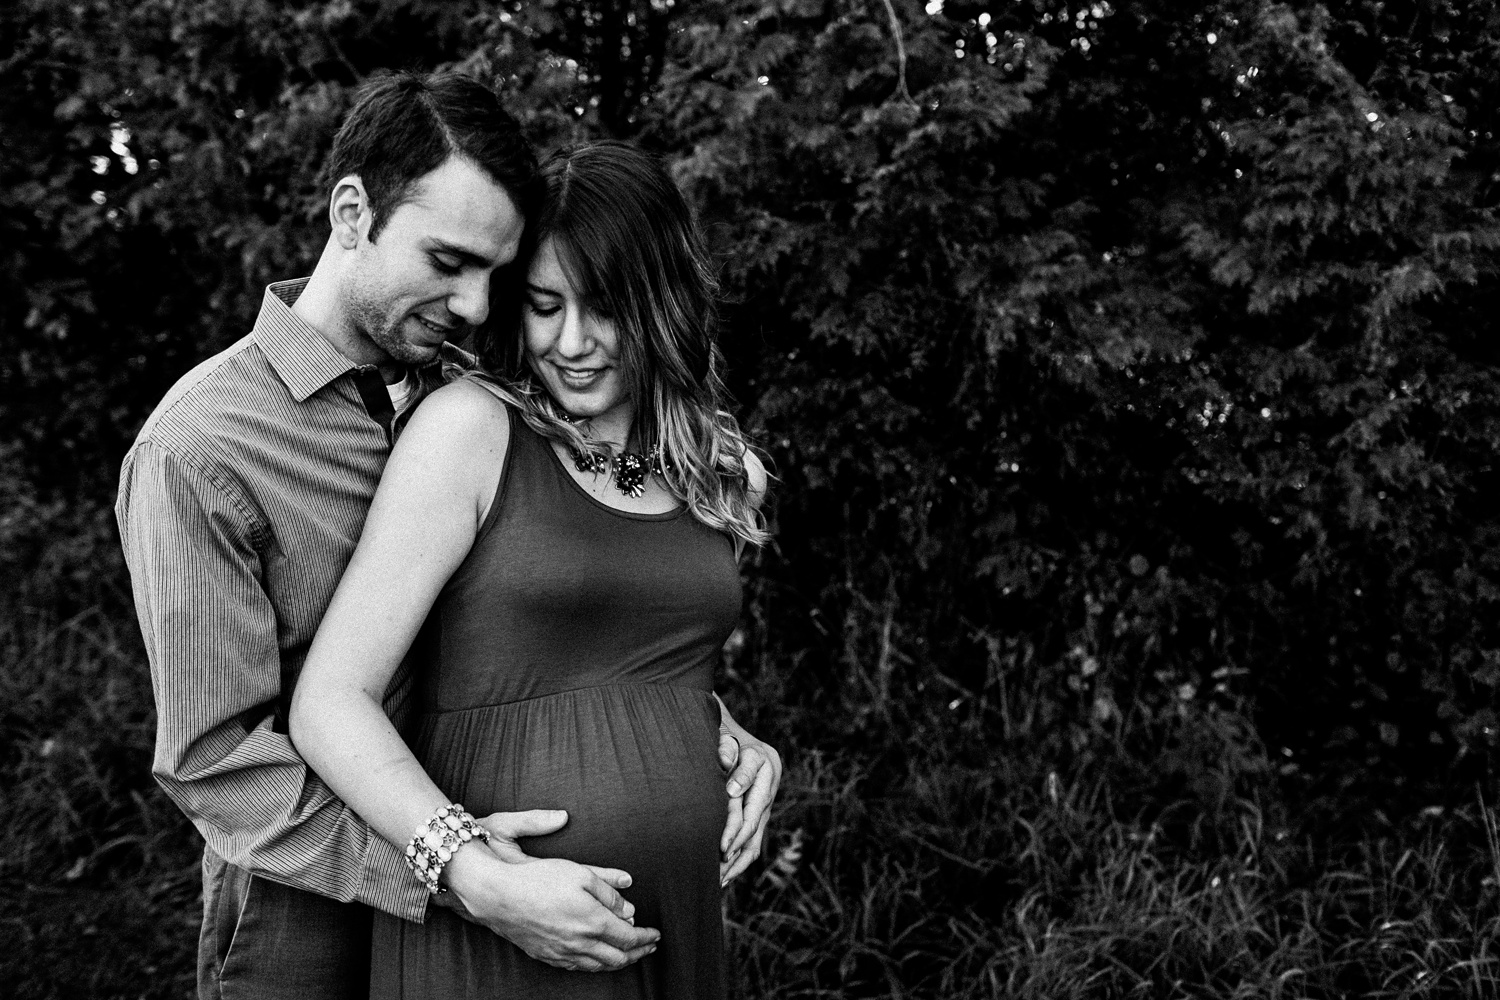 dekalb_IL_maternity_portrait_photographer_0027.jpg